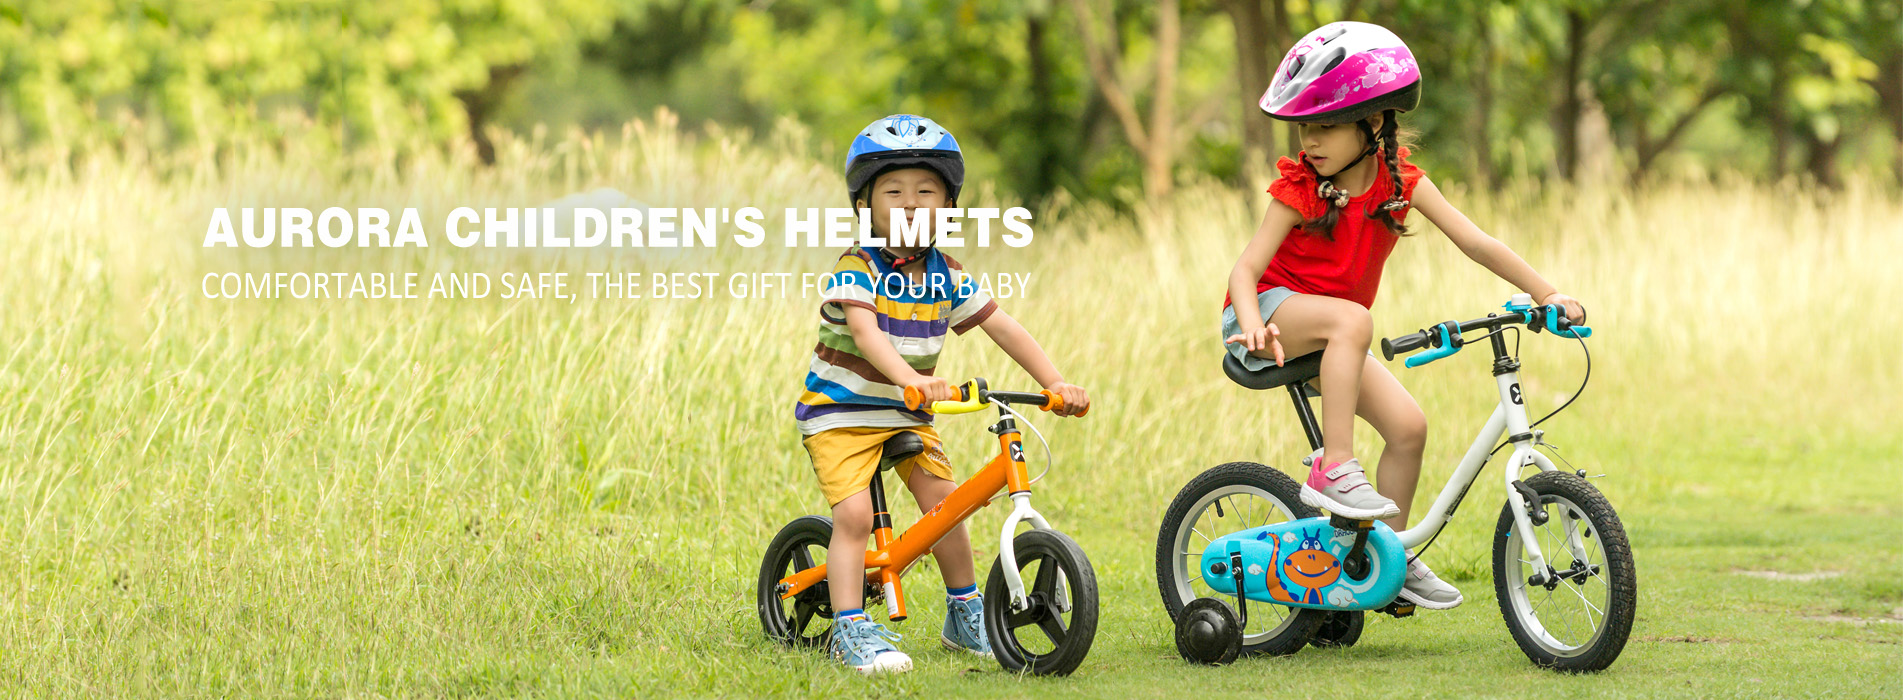 childrens cycle helmet c01 banner